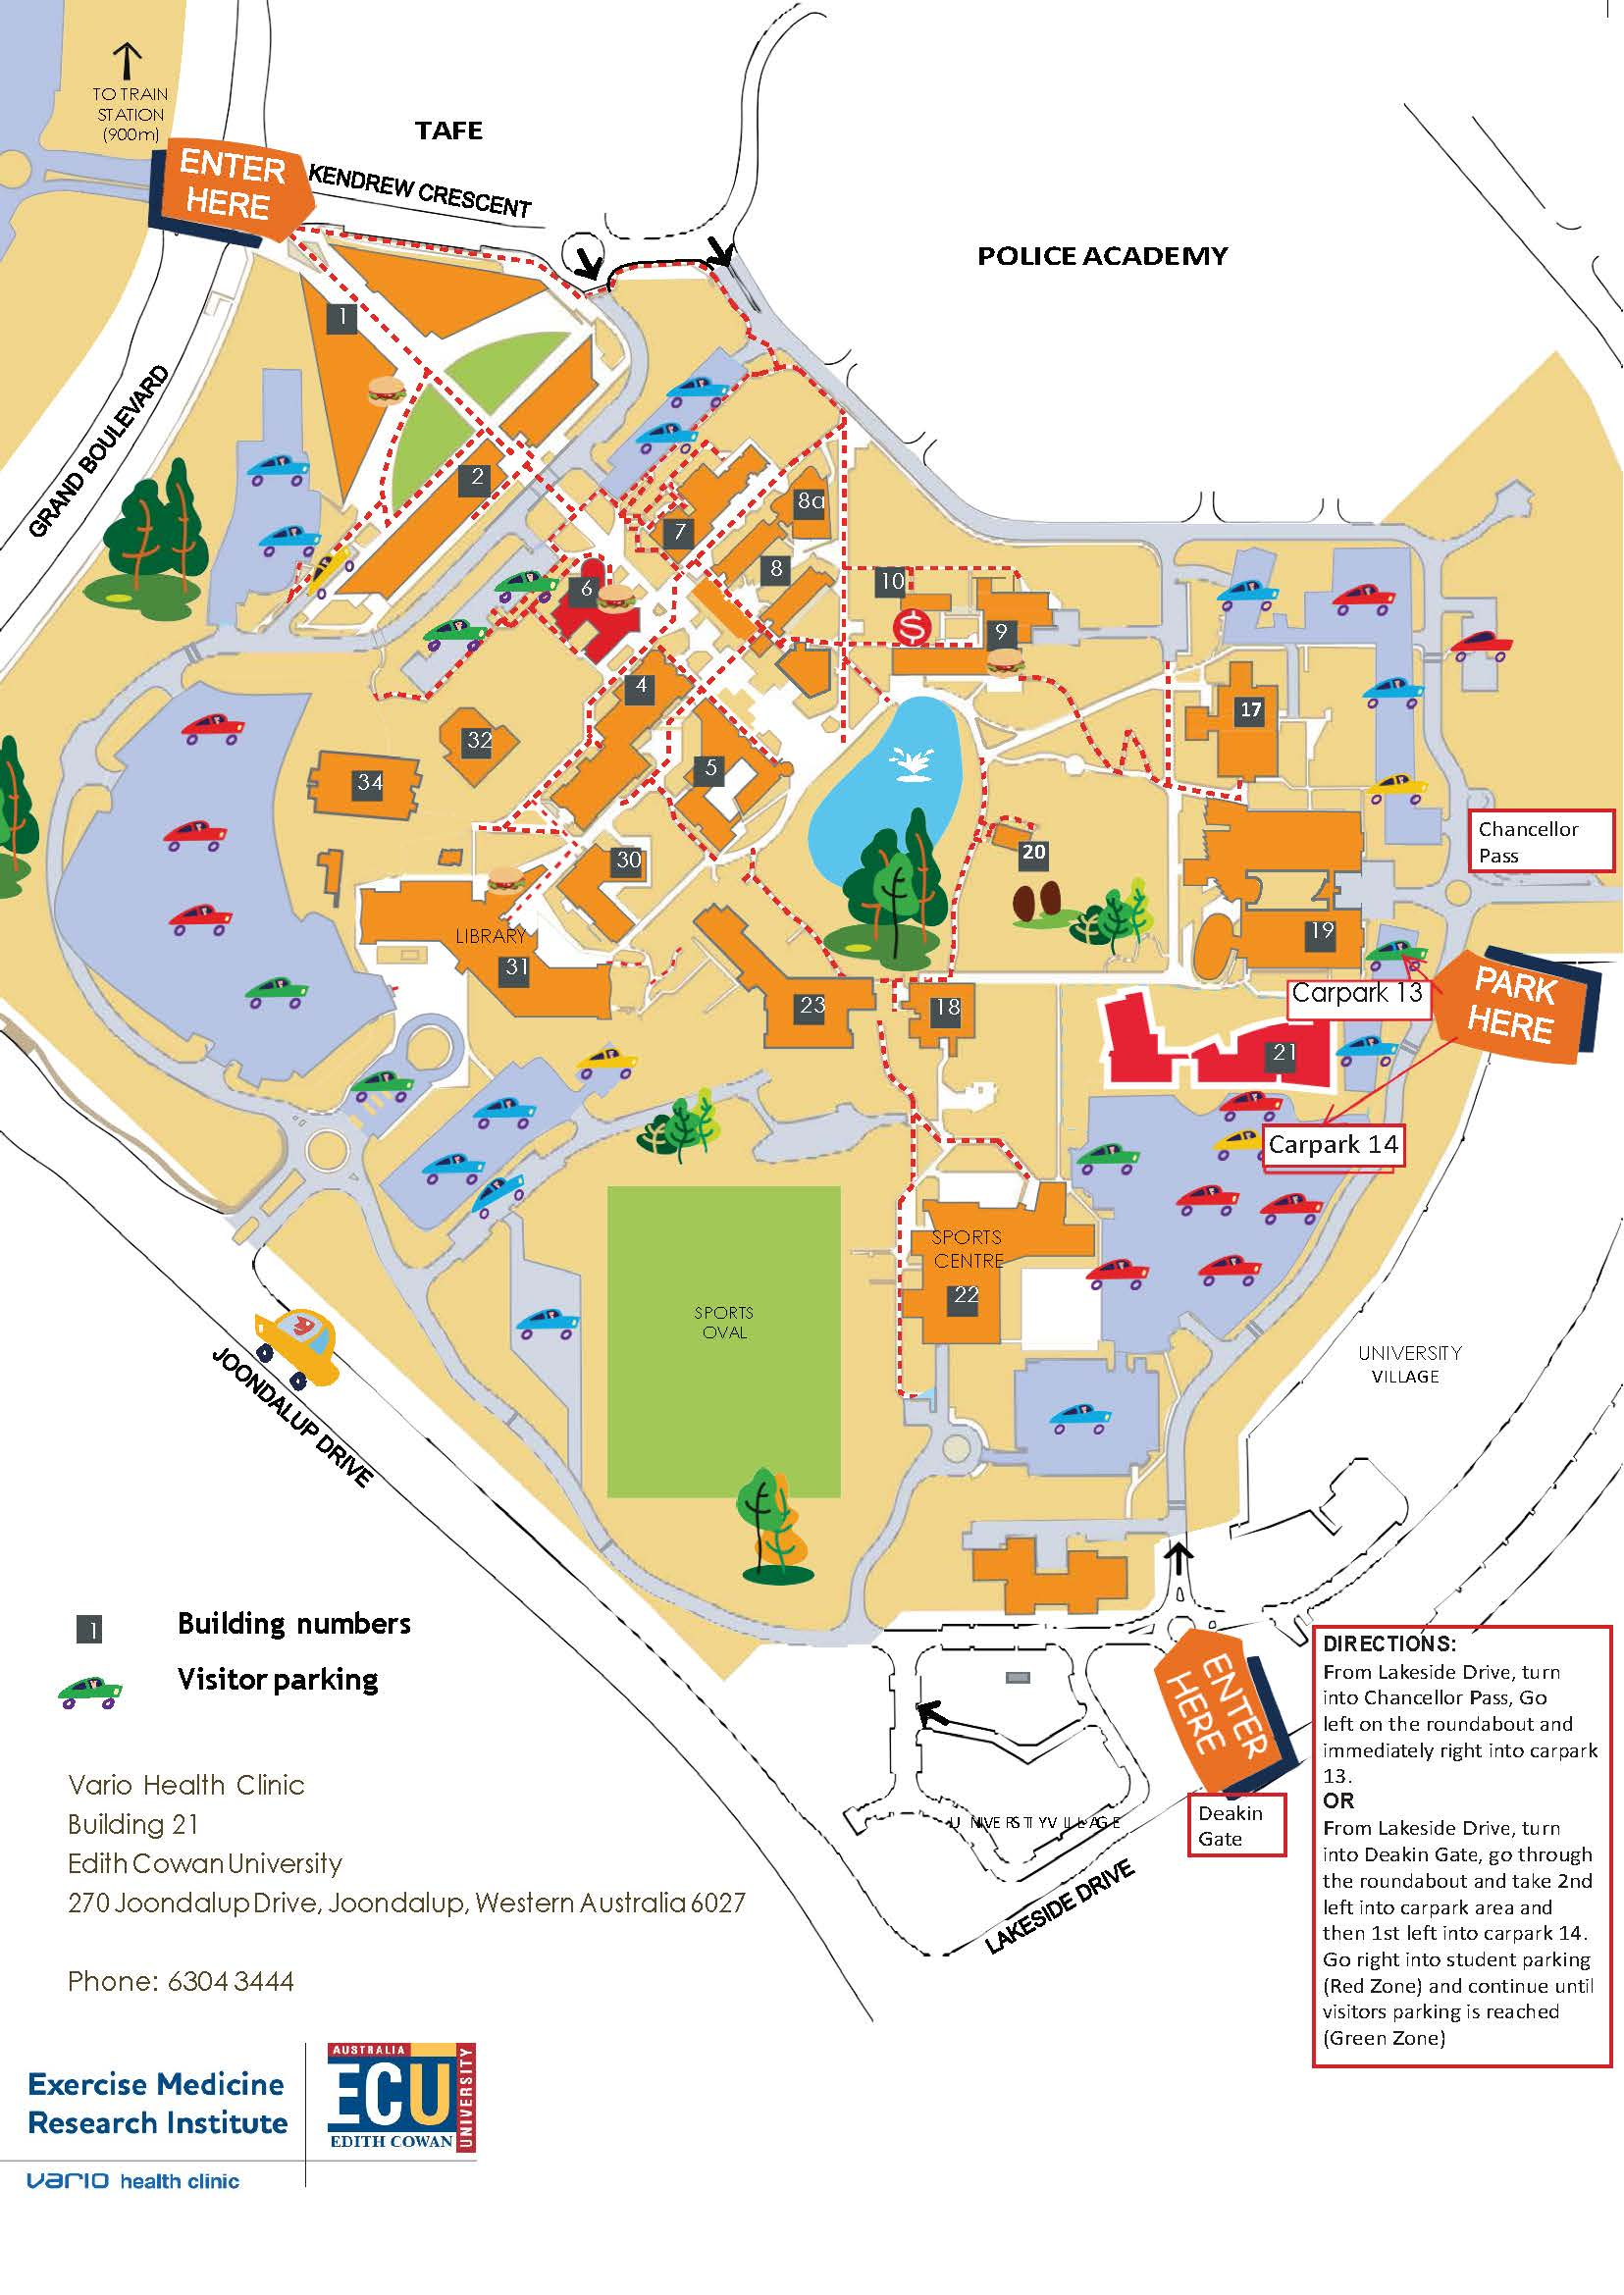 Ecu Mt Lawley Map Ecu Mt Lawley Map | compressportnederland Ecu Mt Lawley Map